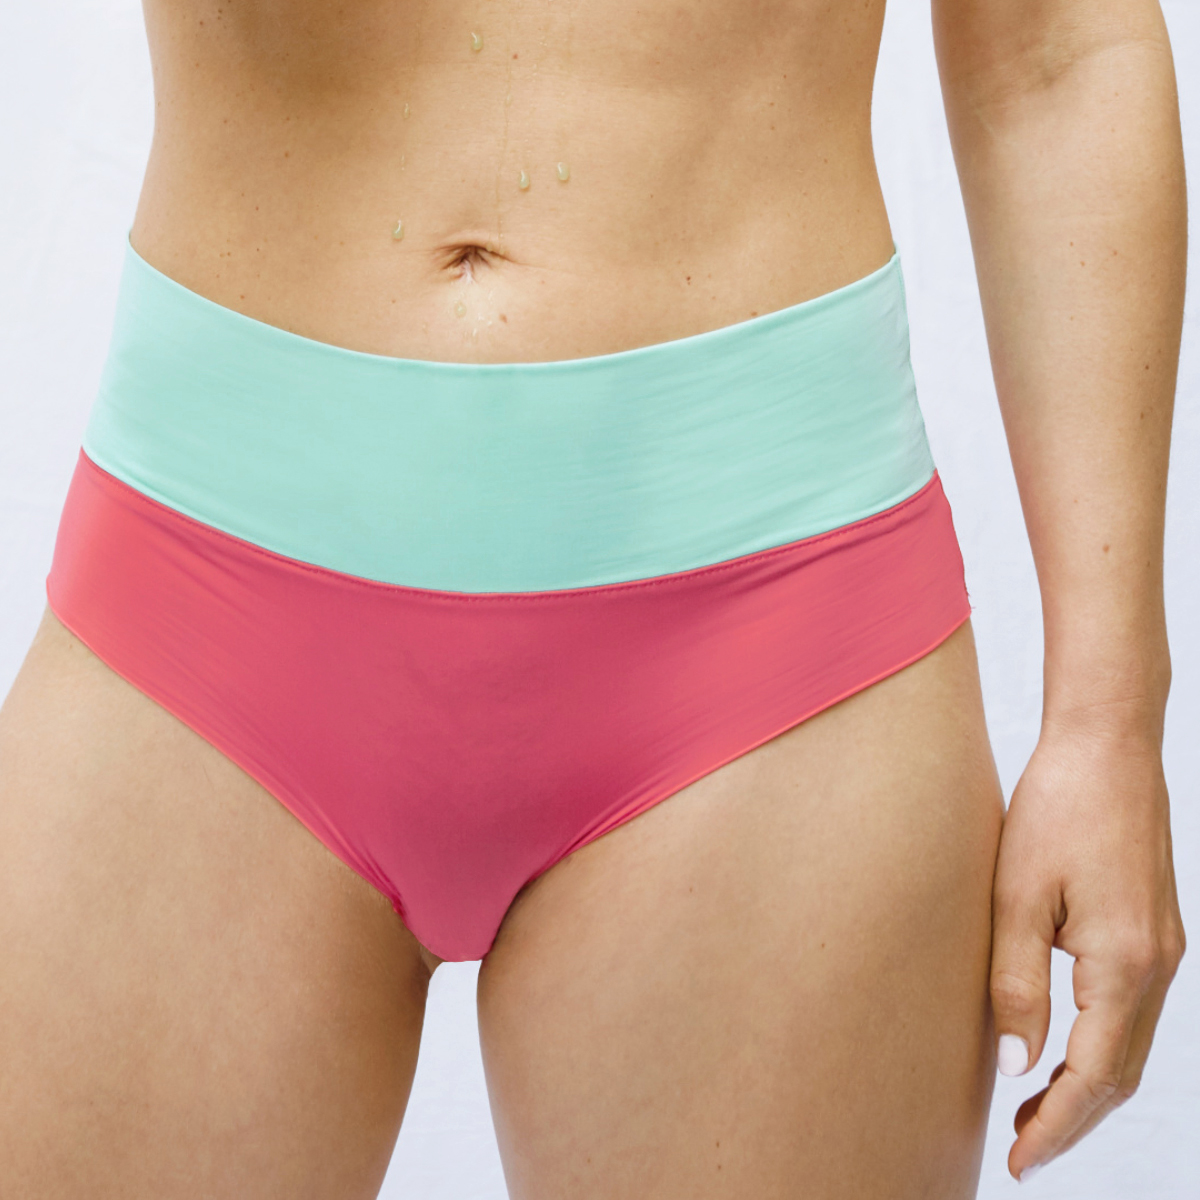 thezoo panty red coral mint green